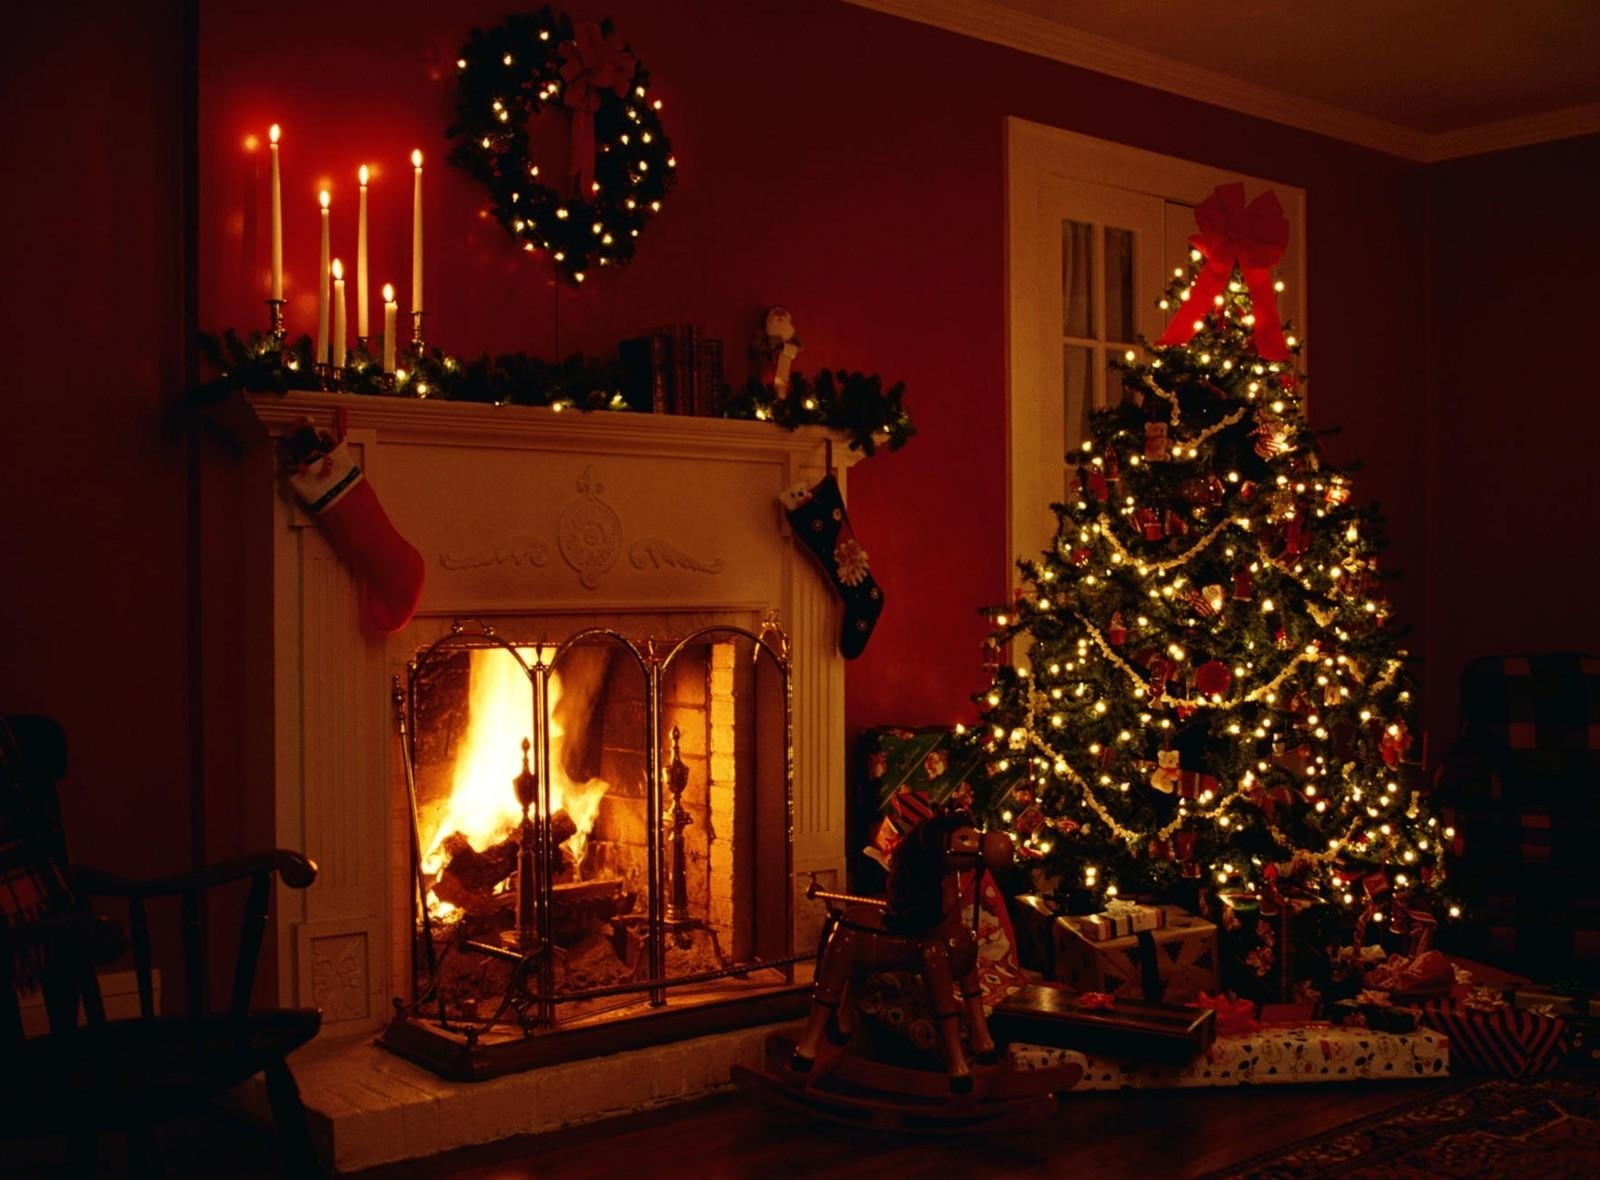 Wallpaper wallpapers browse with. Chimney clipart christmas tree fireplace